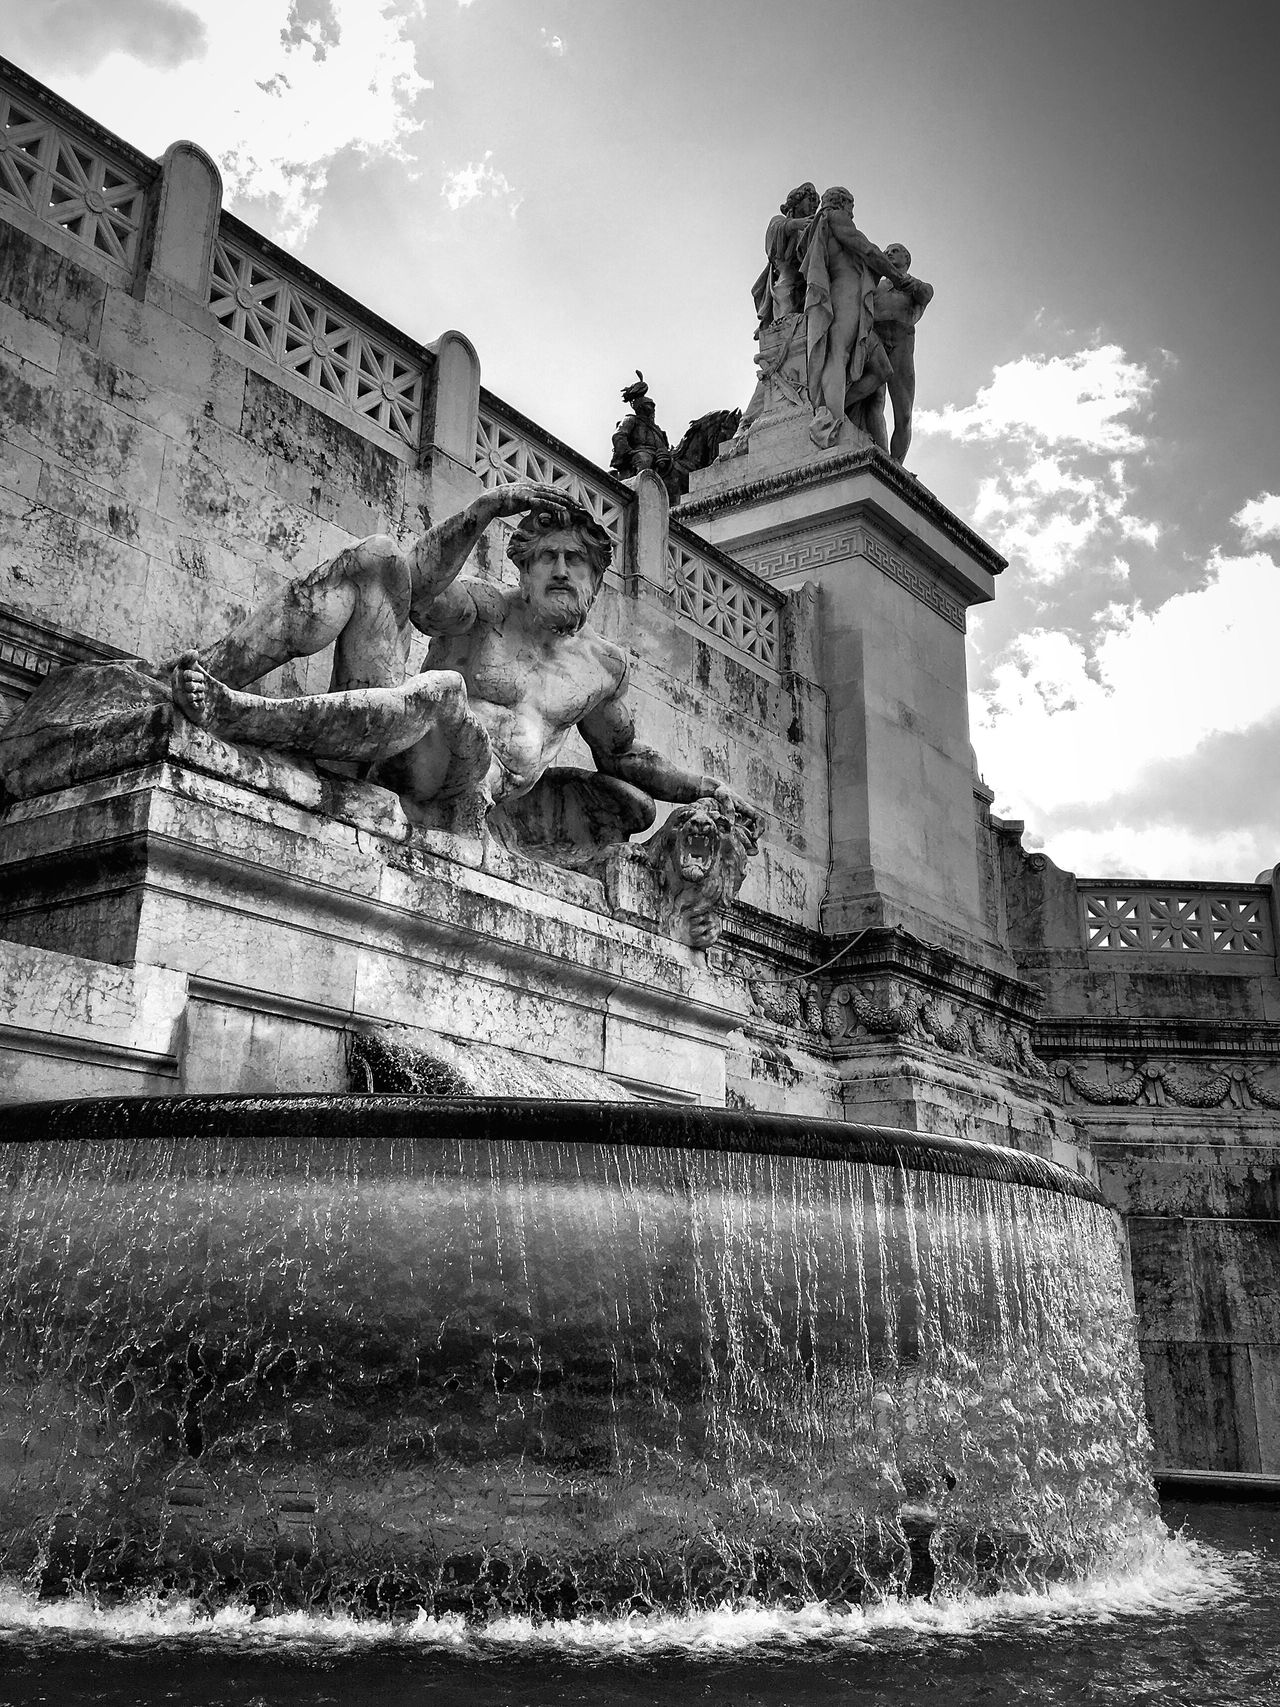 When in Rome 016 Human Representation Statue Art And Craft Low Angle View Fountain VSCO Monument Black & White Photography Shootermag Rome City Italy IPhoneography Lightroom Mobile Black And White Blackandwhite